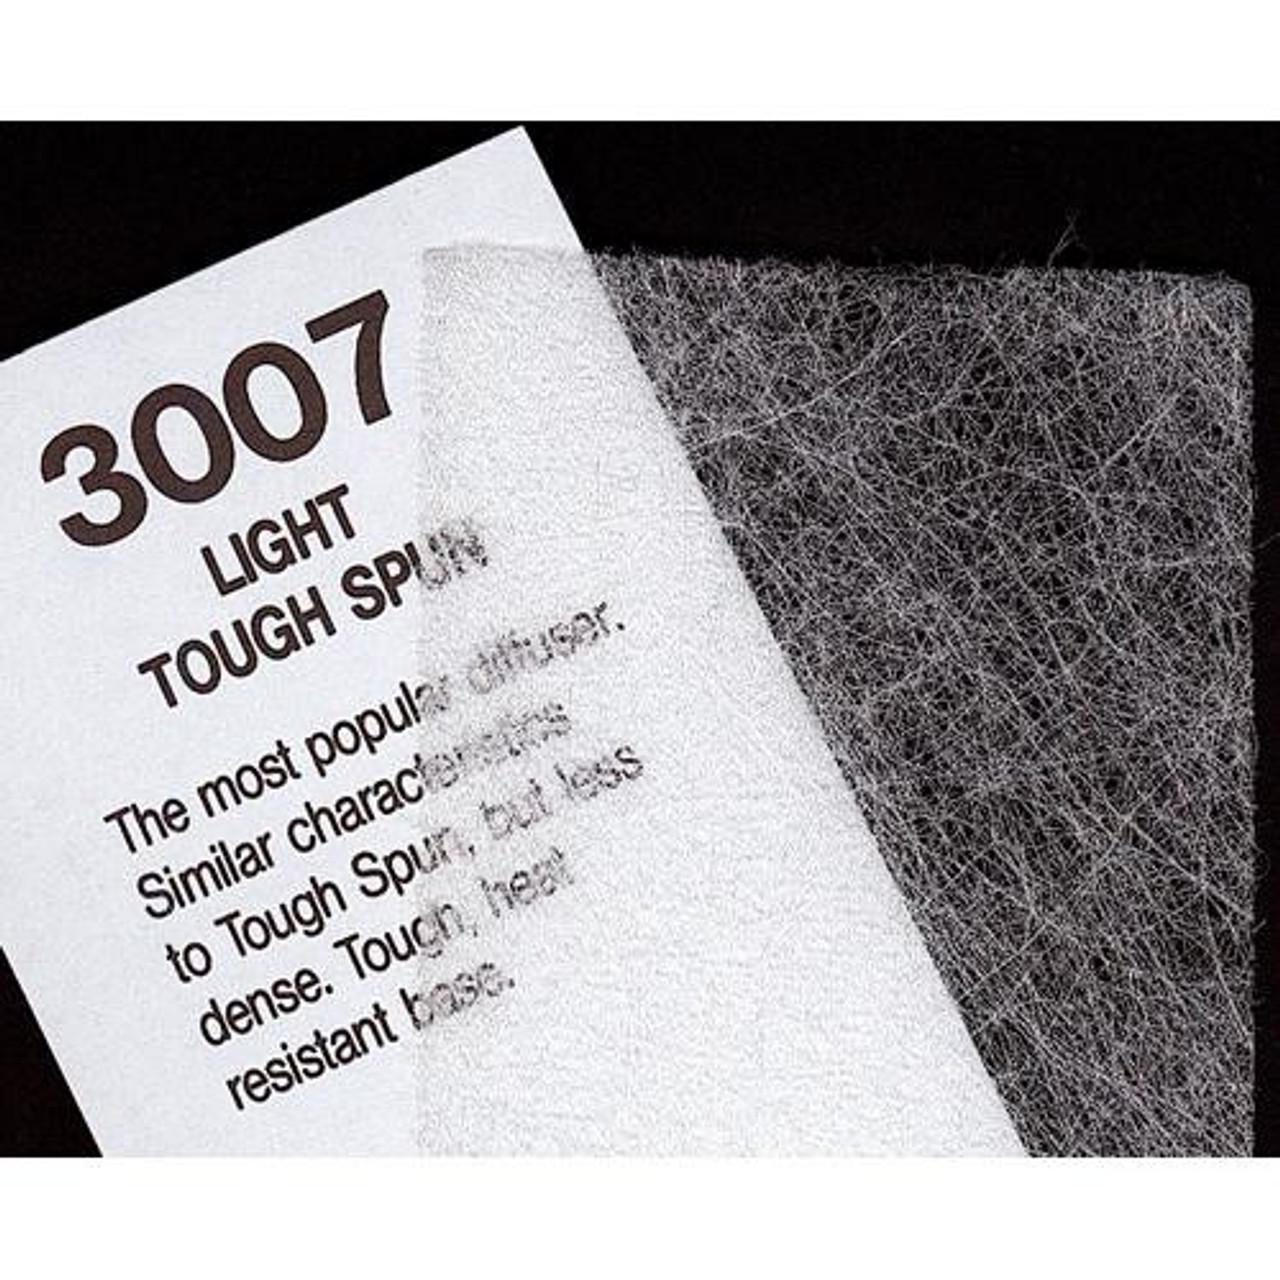 "#3007 Rosco Cinegel Light Tough Spun, 20x24"", Gels"